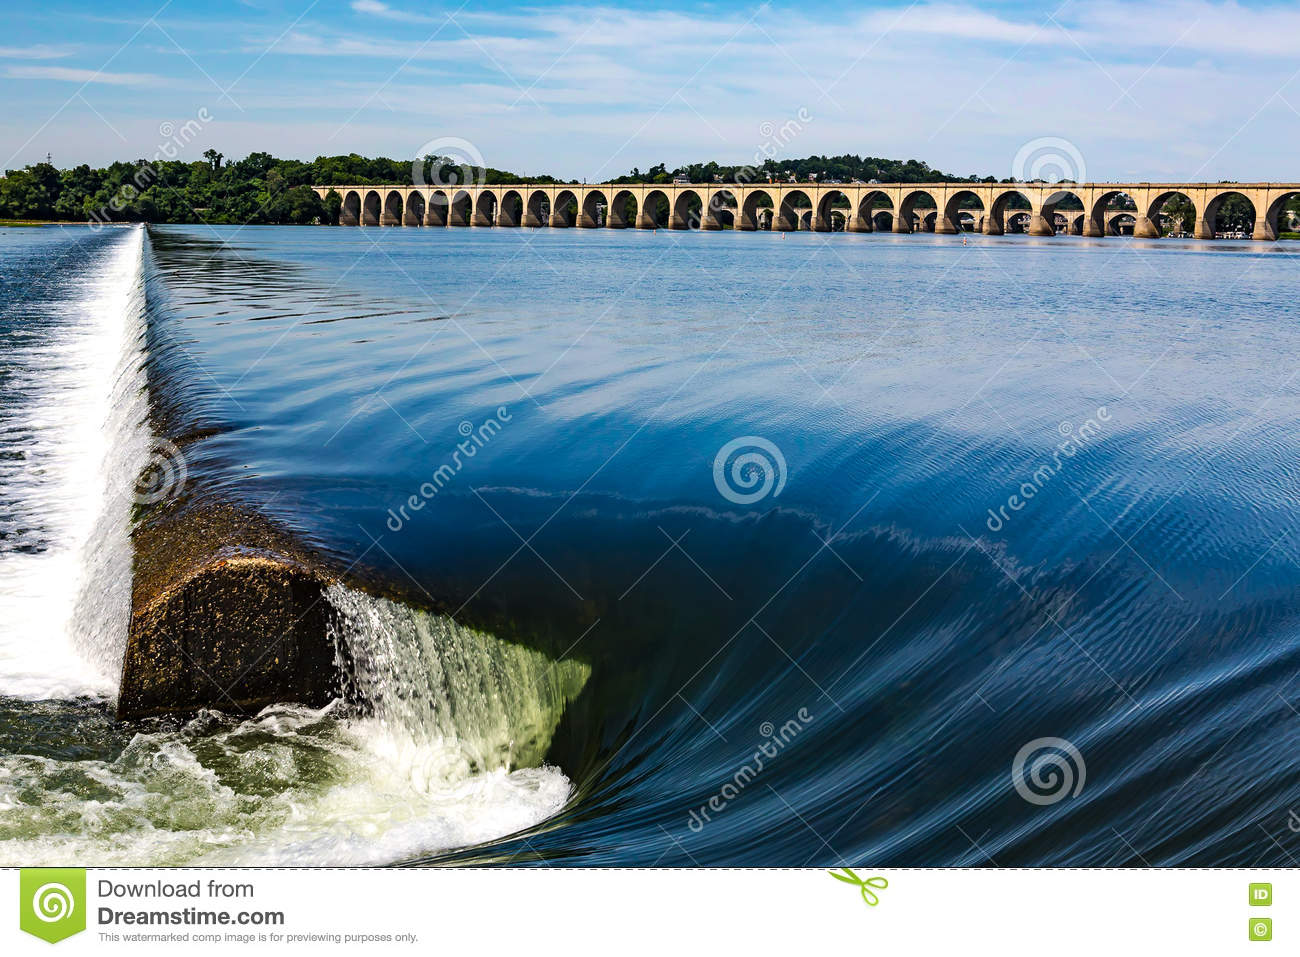 Susquehanna River Dam At Harrisburg Stock Image - Image of over